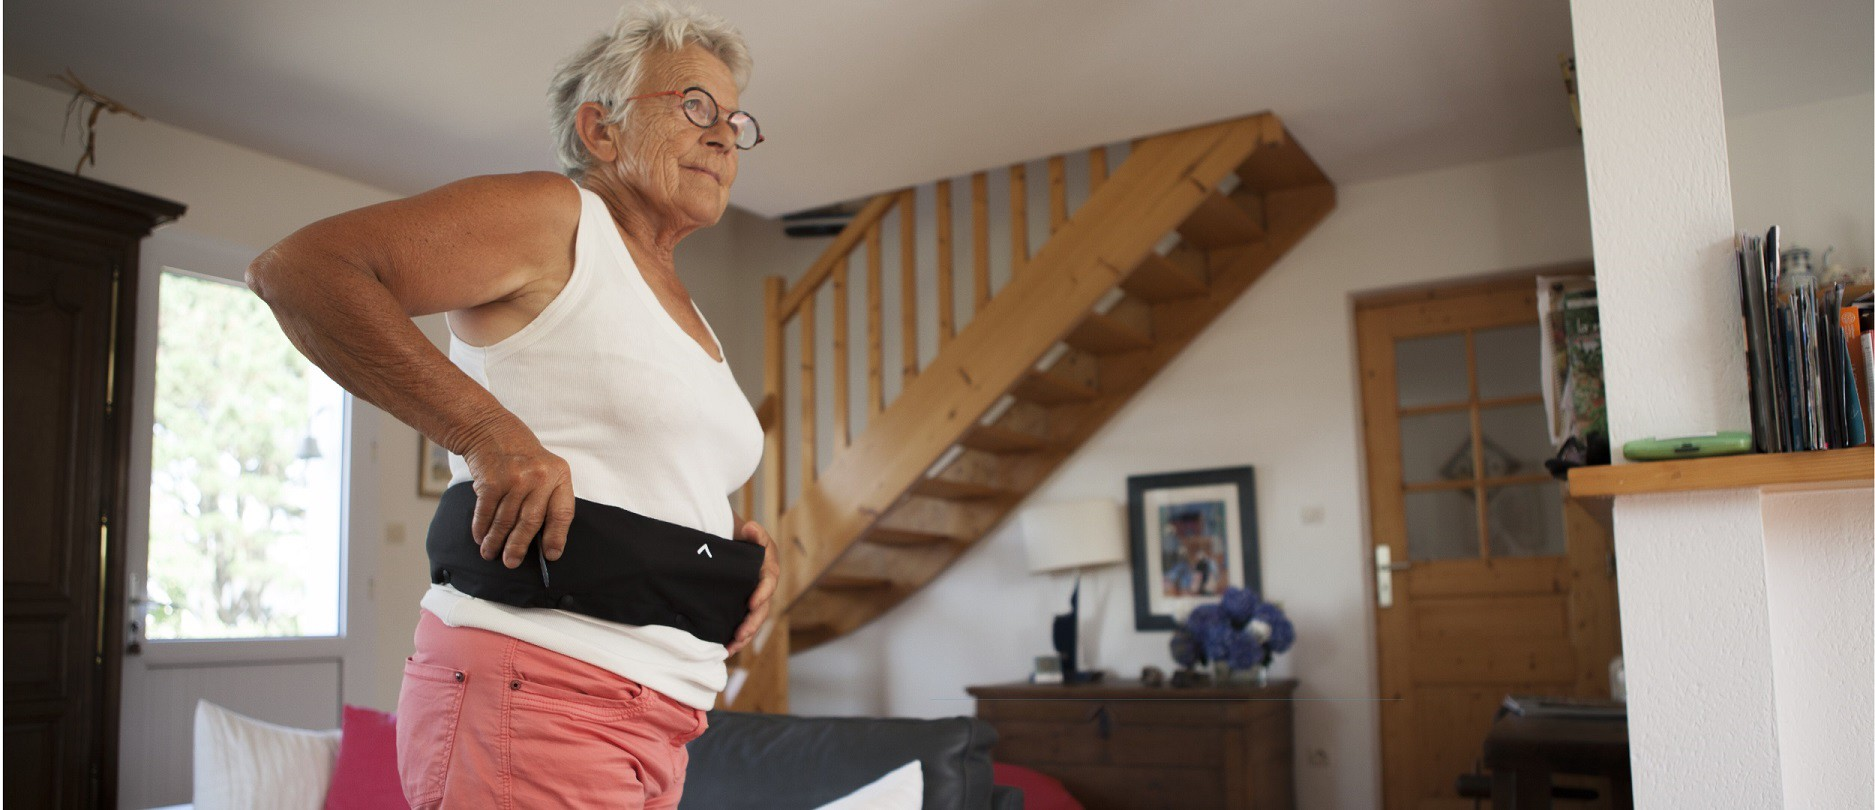 Helite airbag belt for senior hip fracture